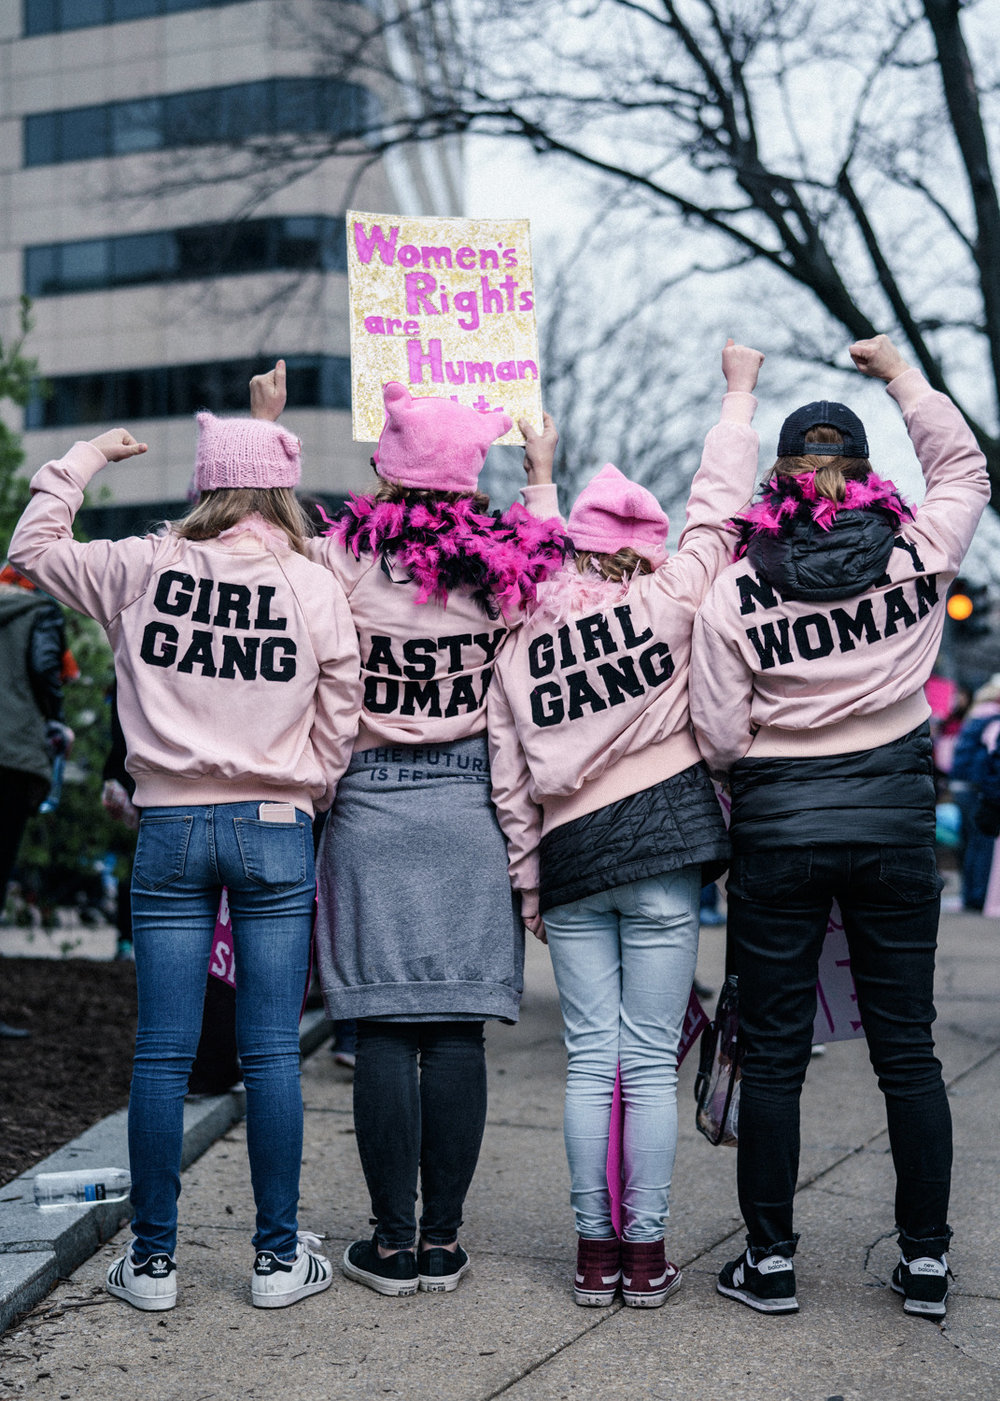 Girl Gangs rule - Washington